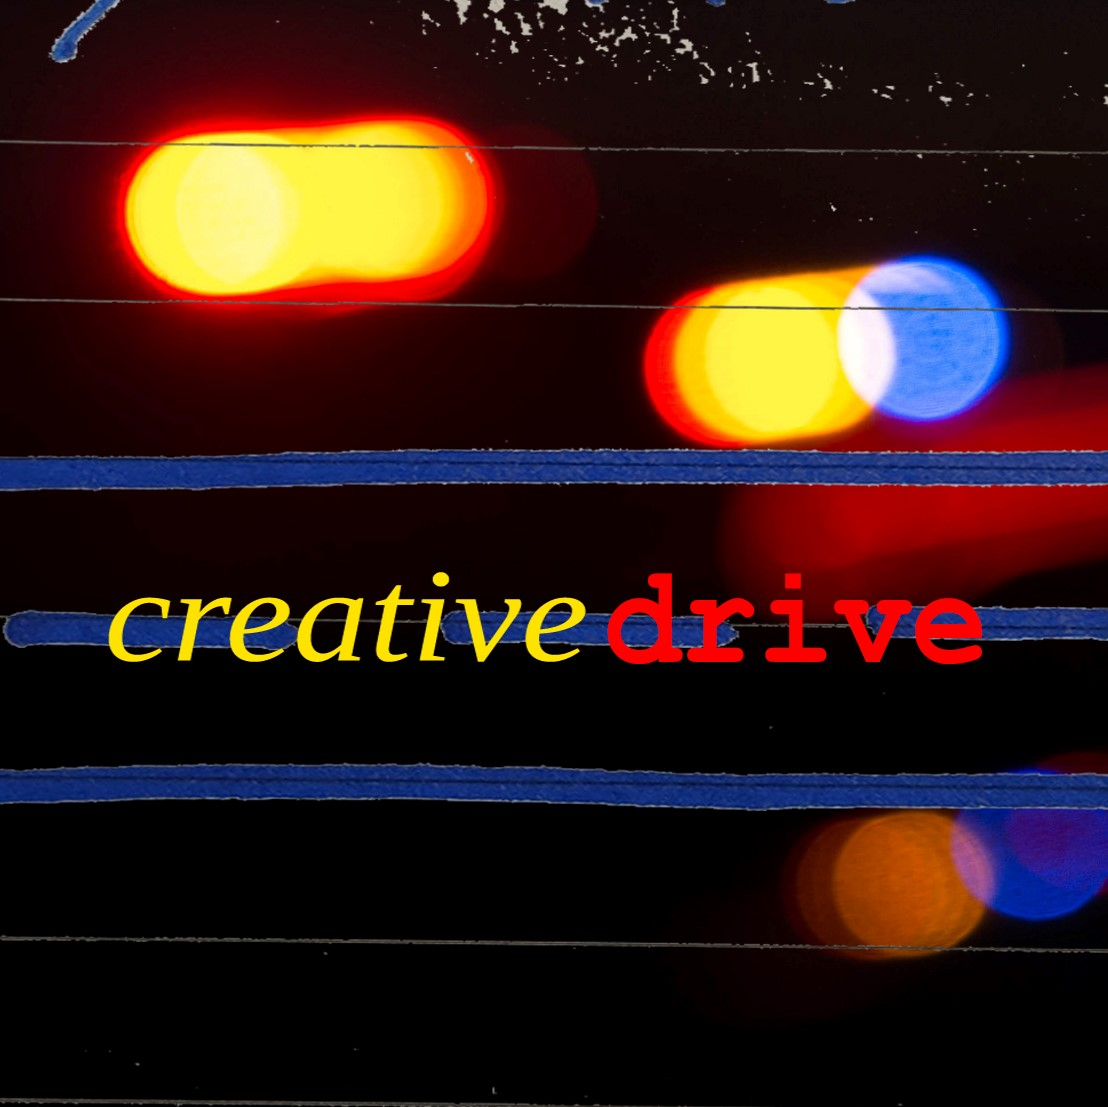 creativedrivetrack (2)